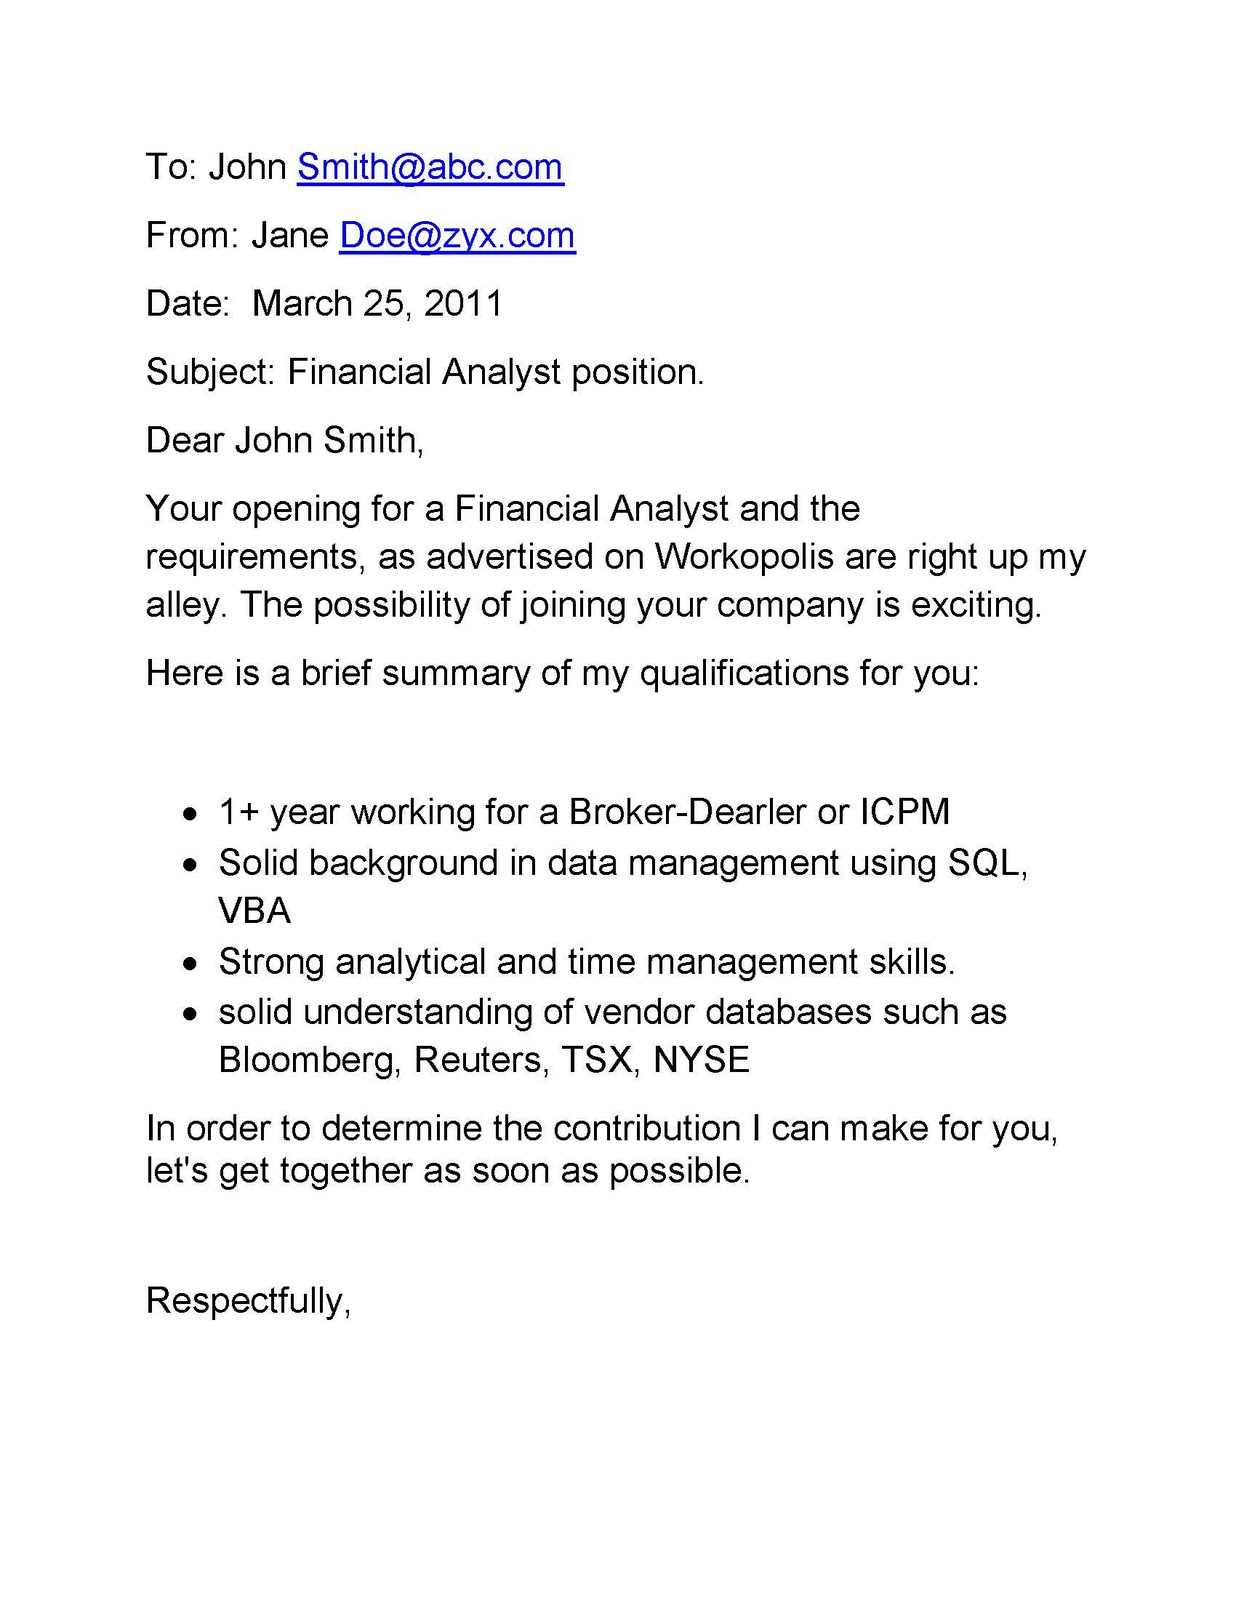 Office Clerk Cover Letter Samples Resume Genius Domov  Cover Letter Email Sample